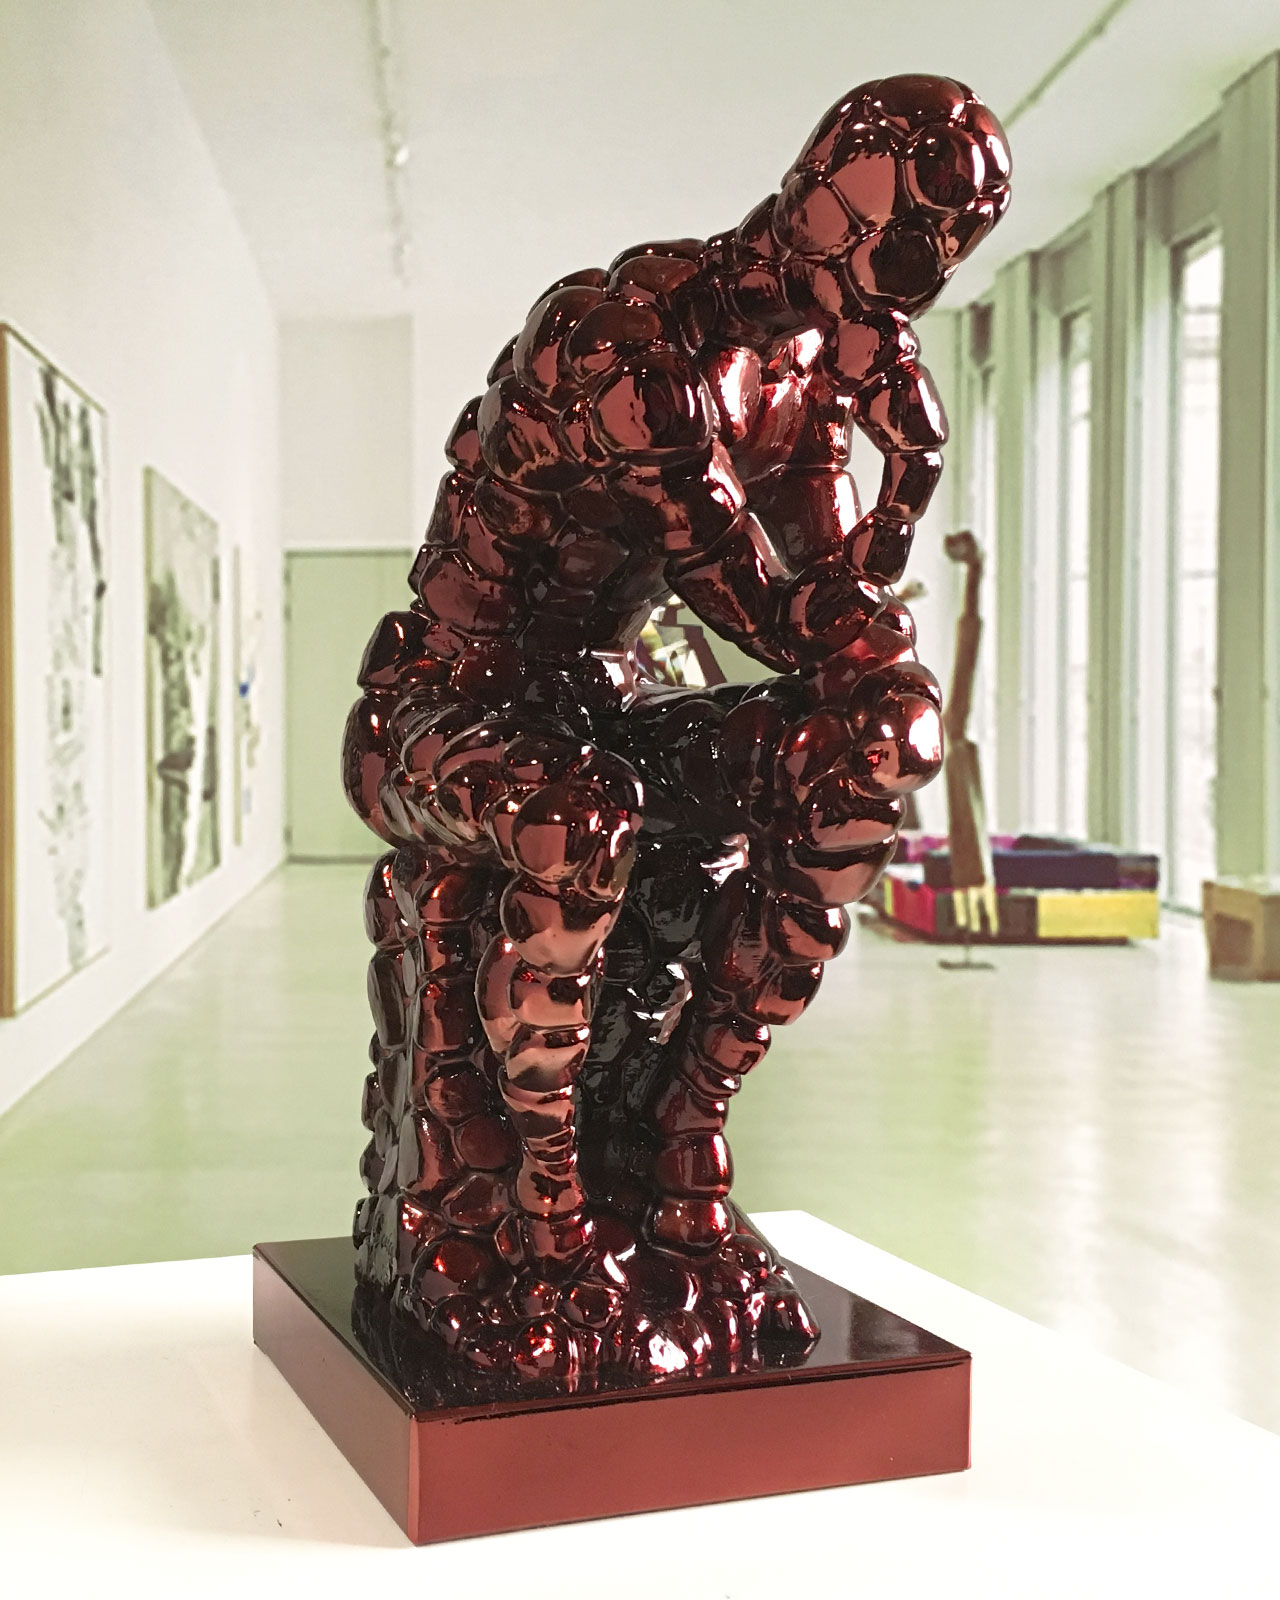 thinker-rodin-as-an-excuse-fire-red